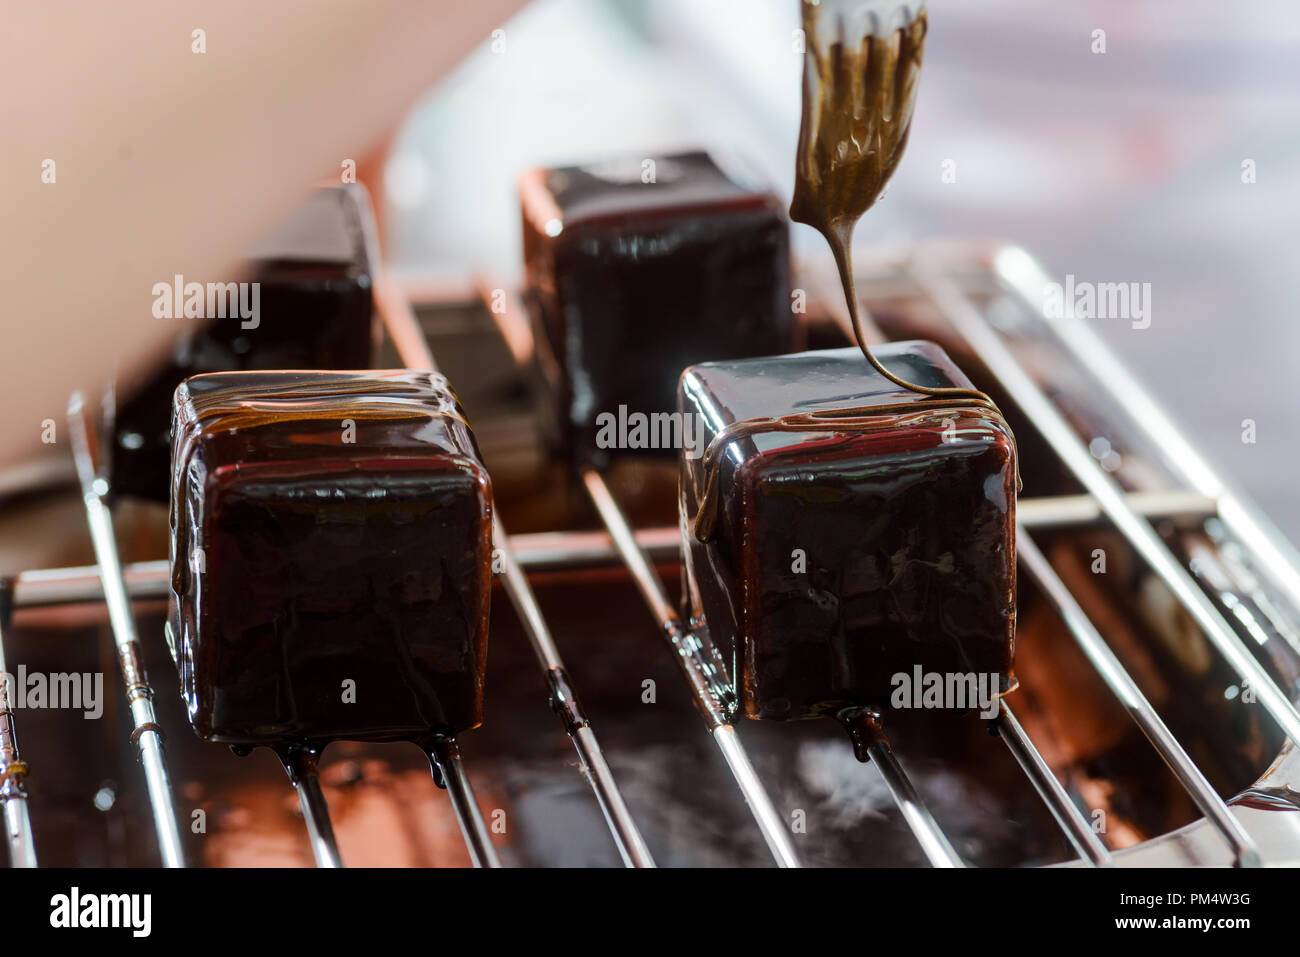 Decorating mousse cakes with caramel - Stock Image